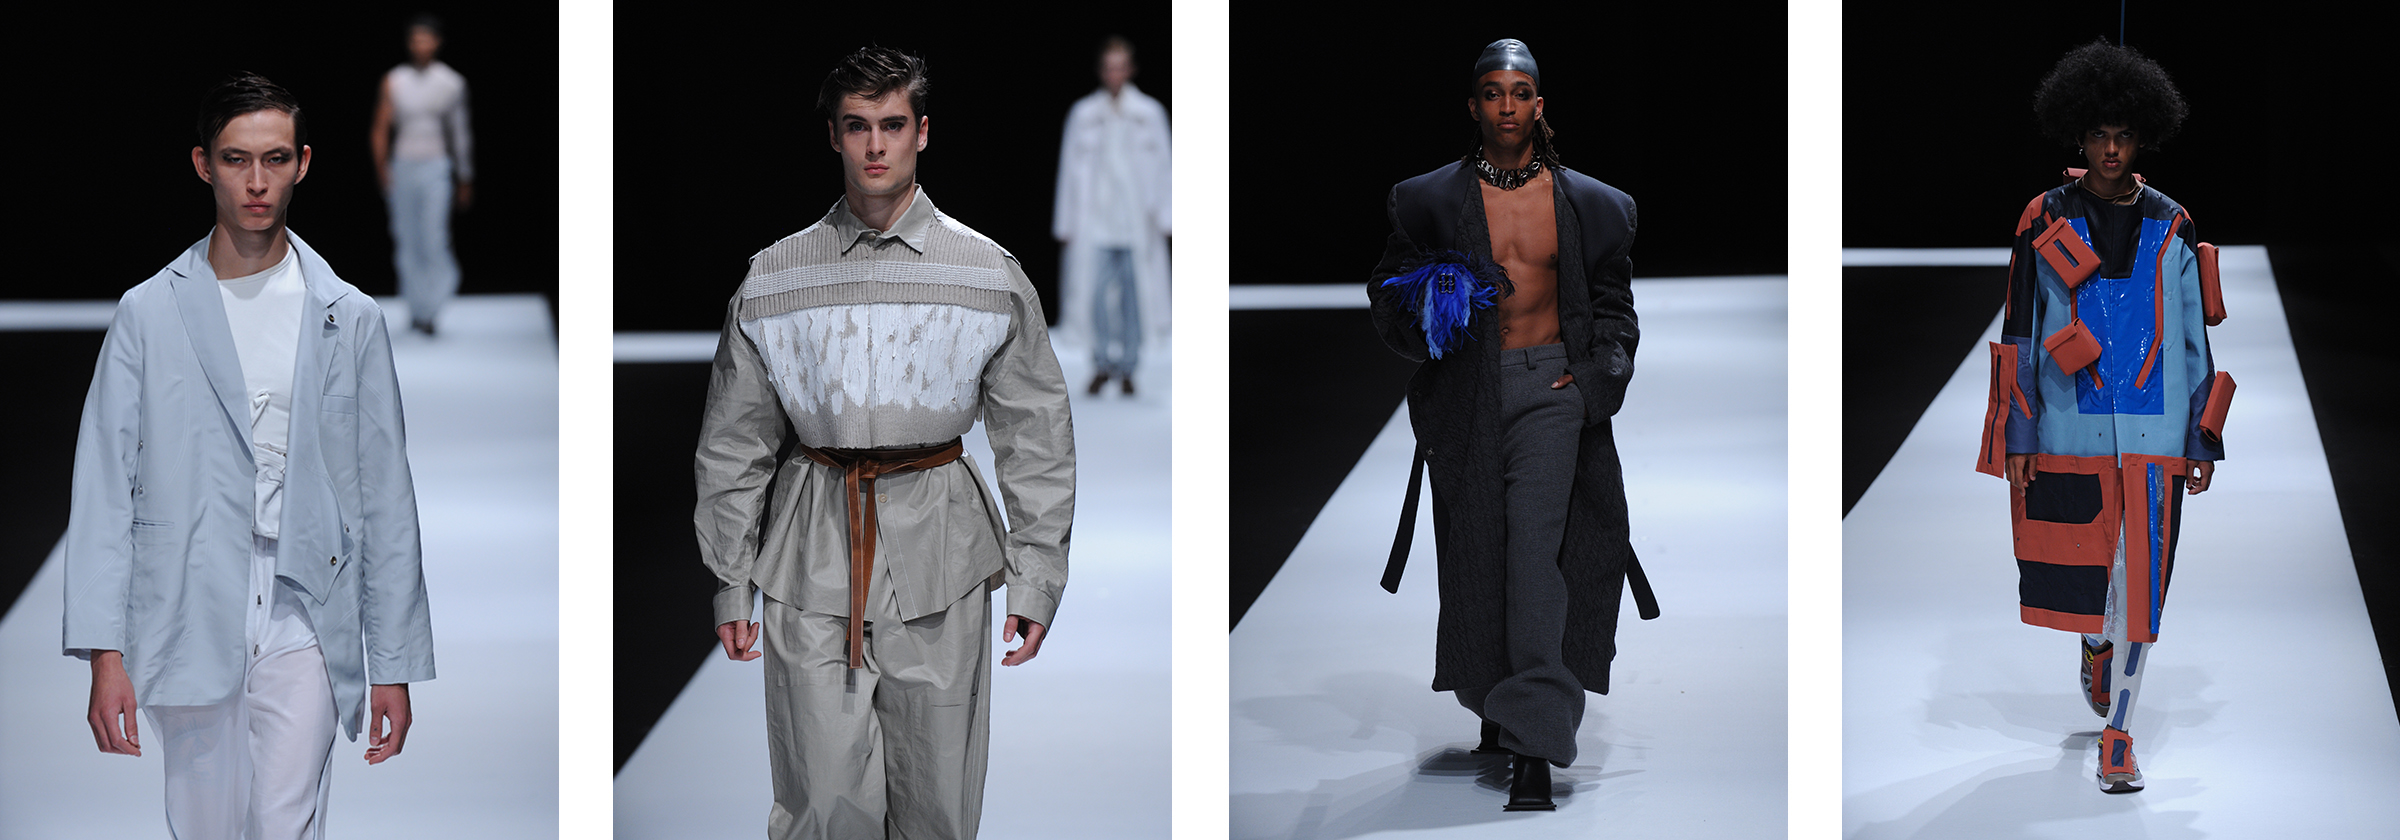 Four images of male models in menswear clothing